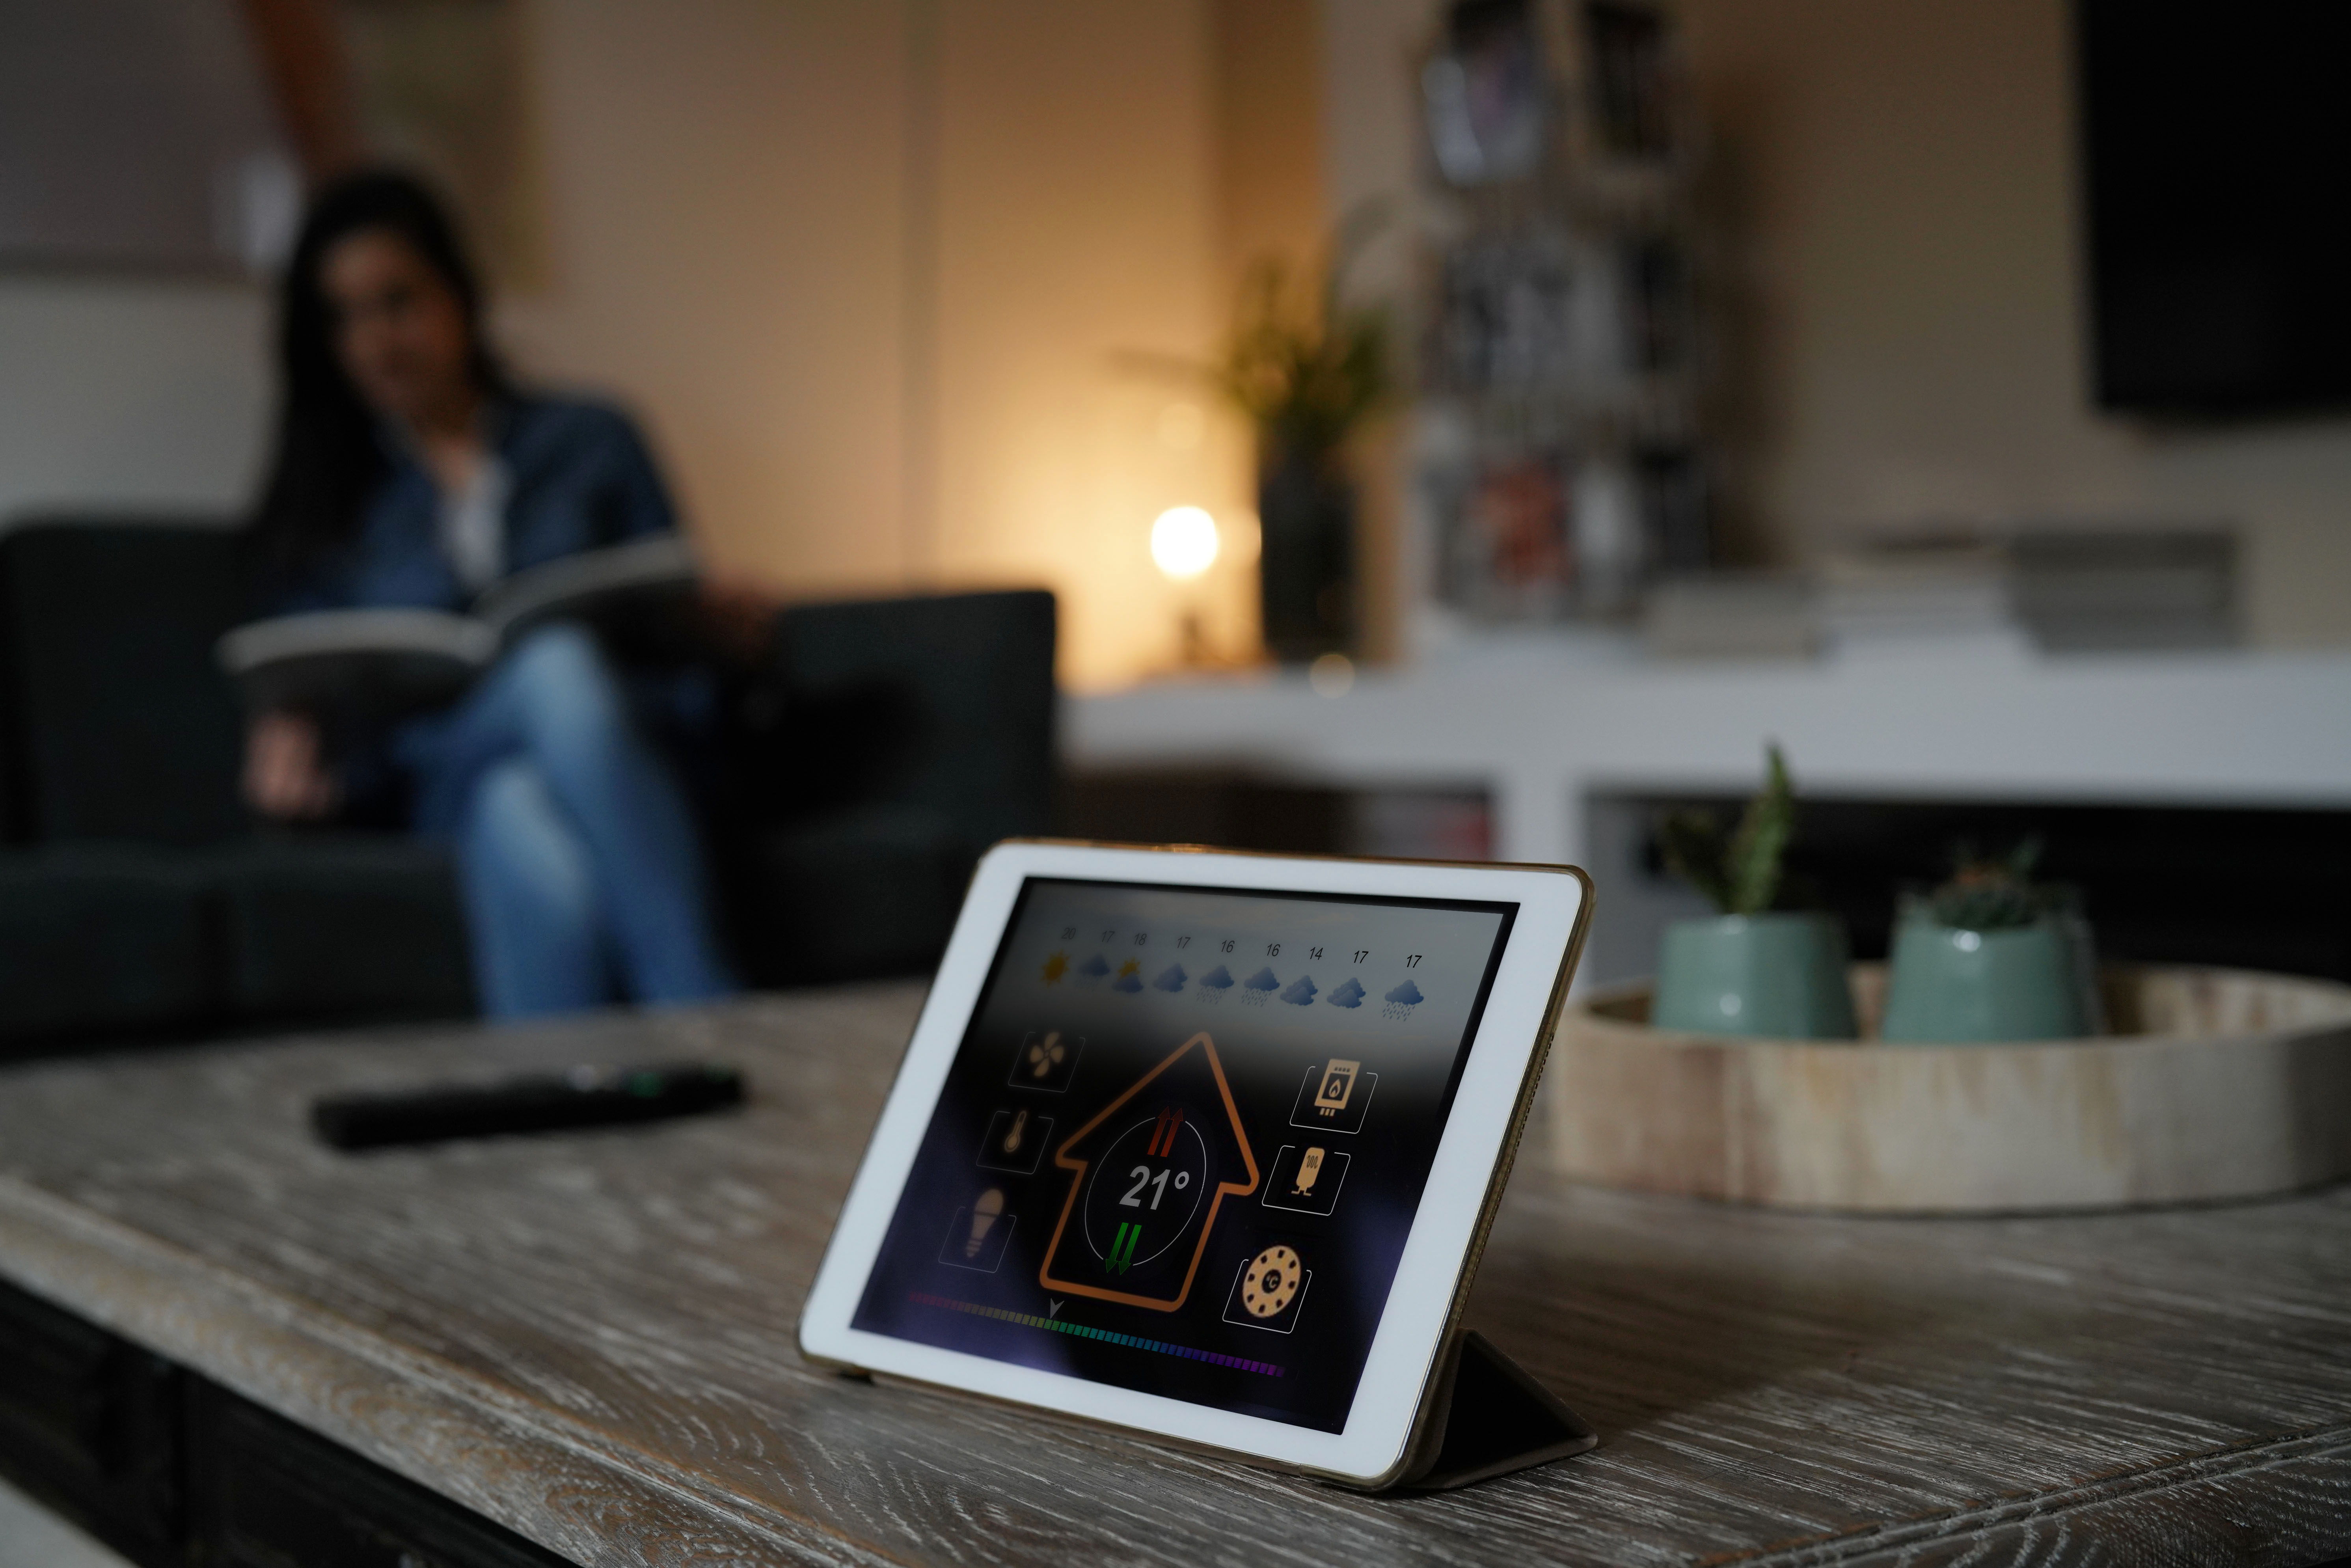 Smart home devices trends show demand for voice activated control